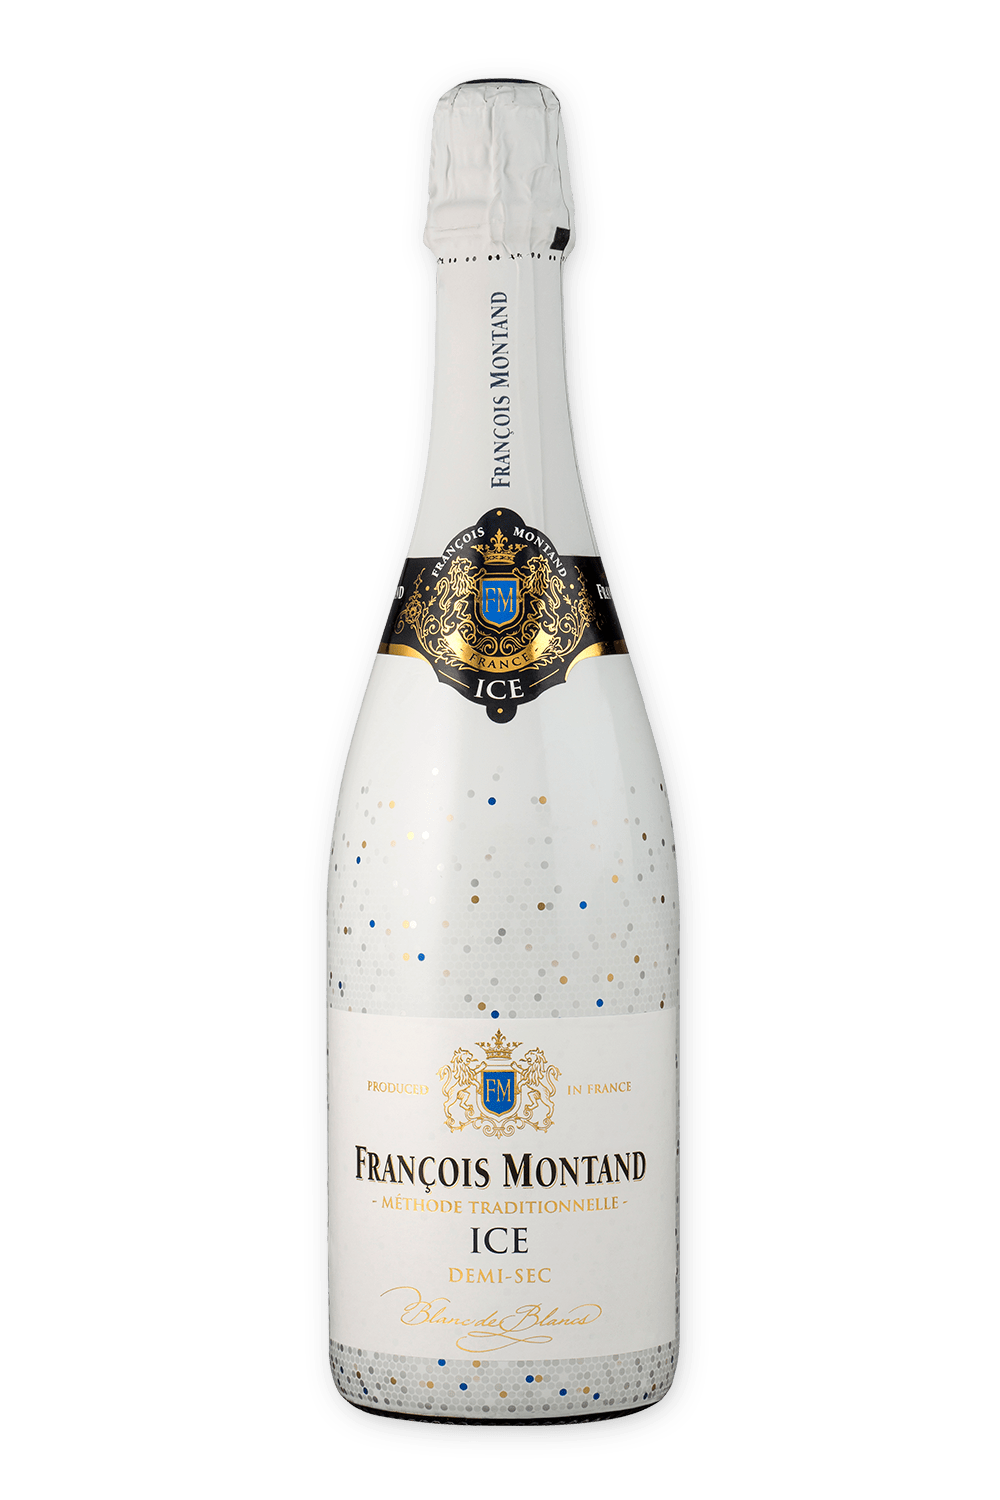 Francois-Montand-Blanc-De-Blancs-Methode-Traditionnelle-Ice-Demi-Sec